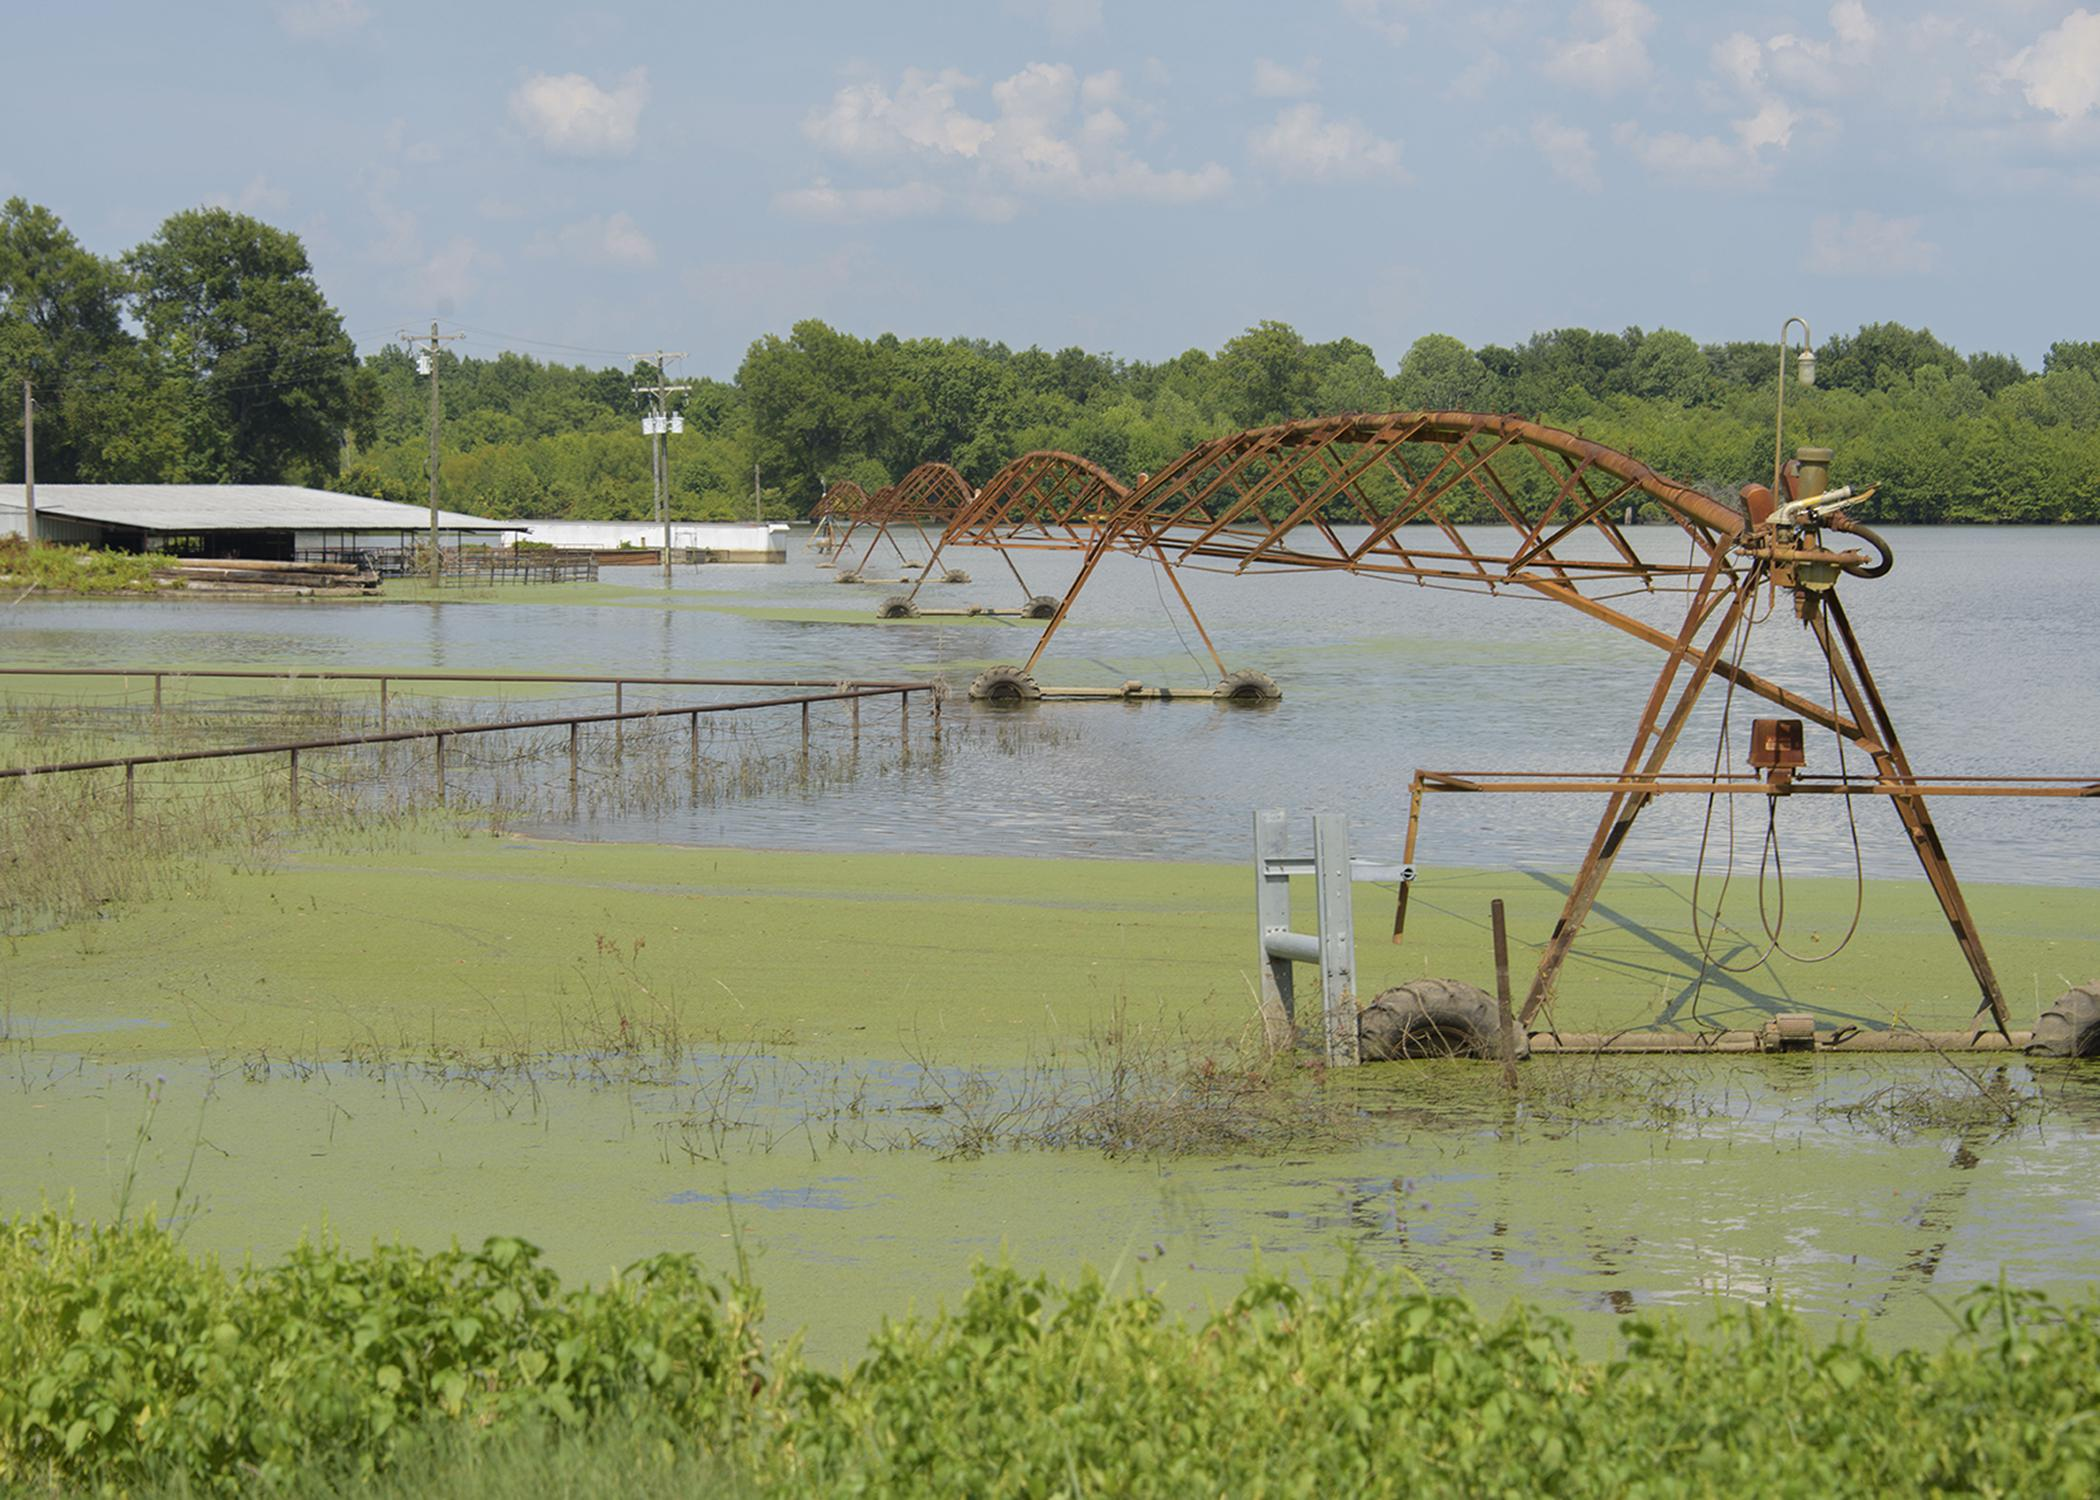 A pivot irrigation system stands in algae-covered water in a flooded field with farm buildings in the distance.